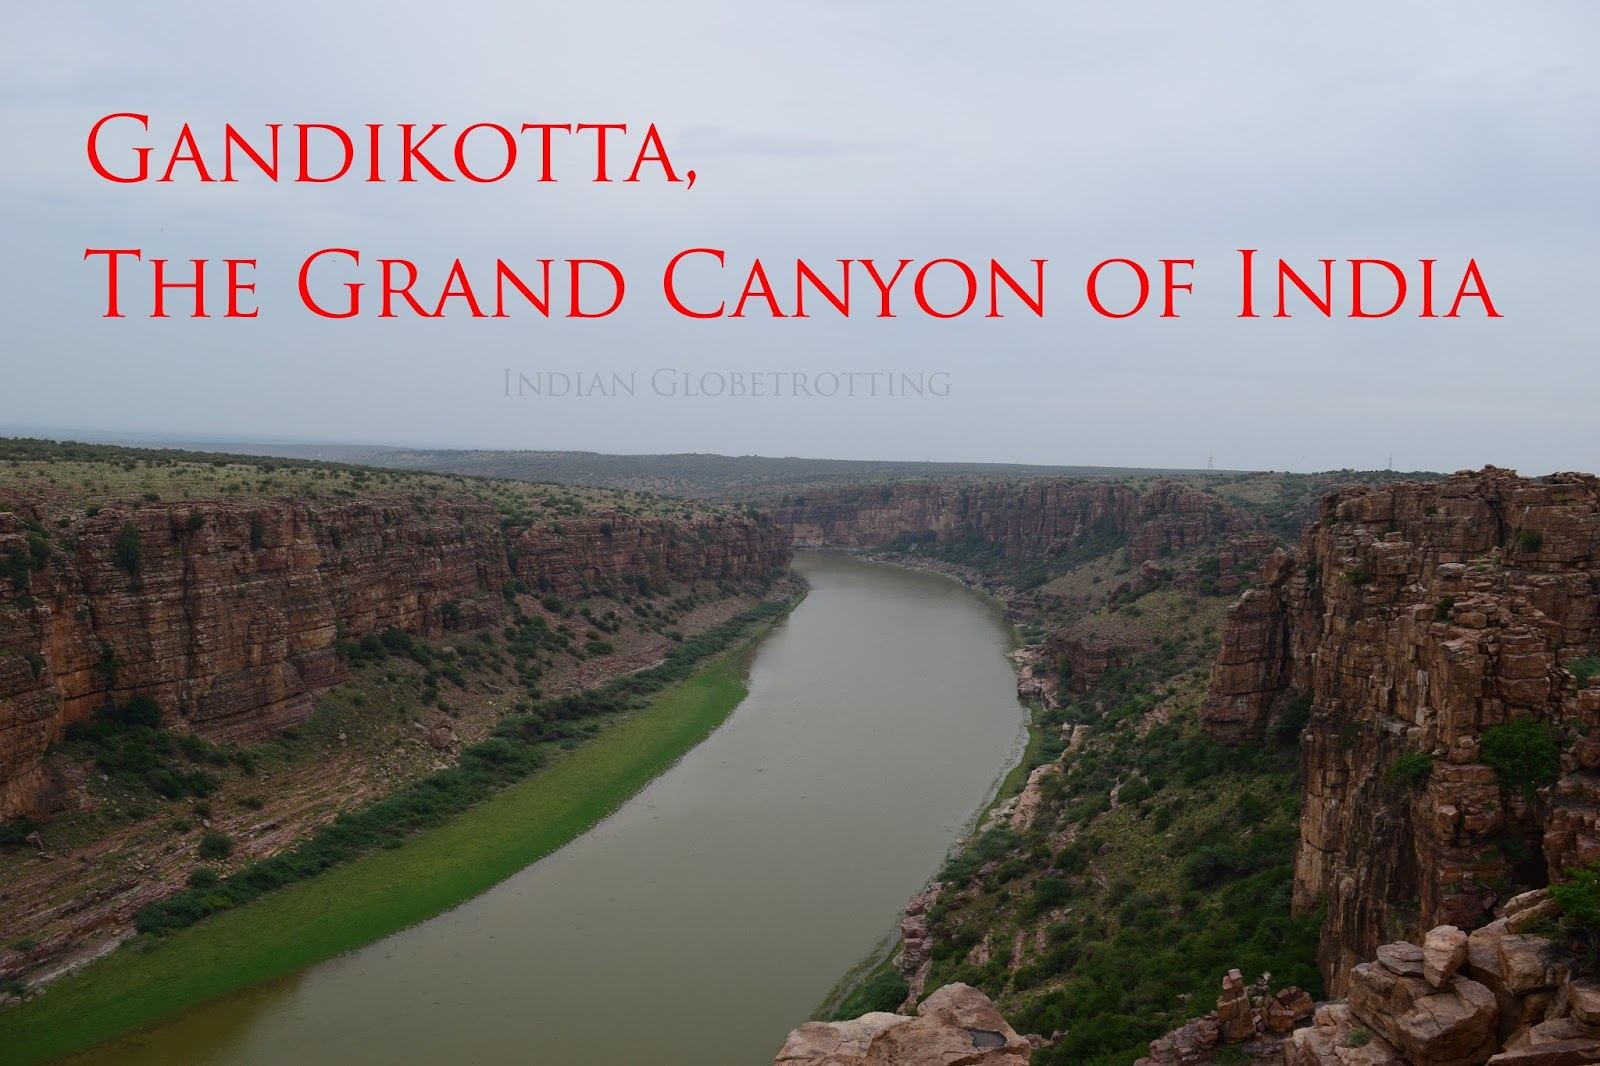 Gandikotta is also known as the grand canyon of india